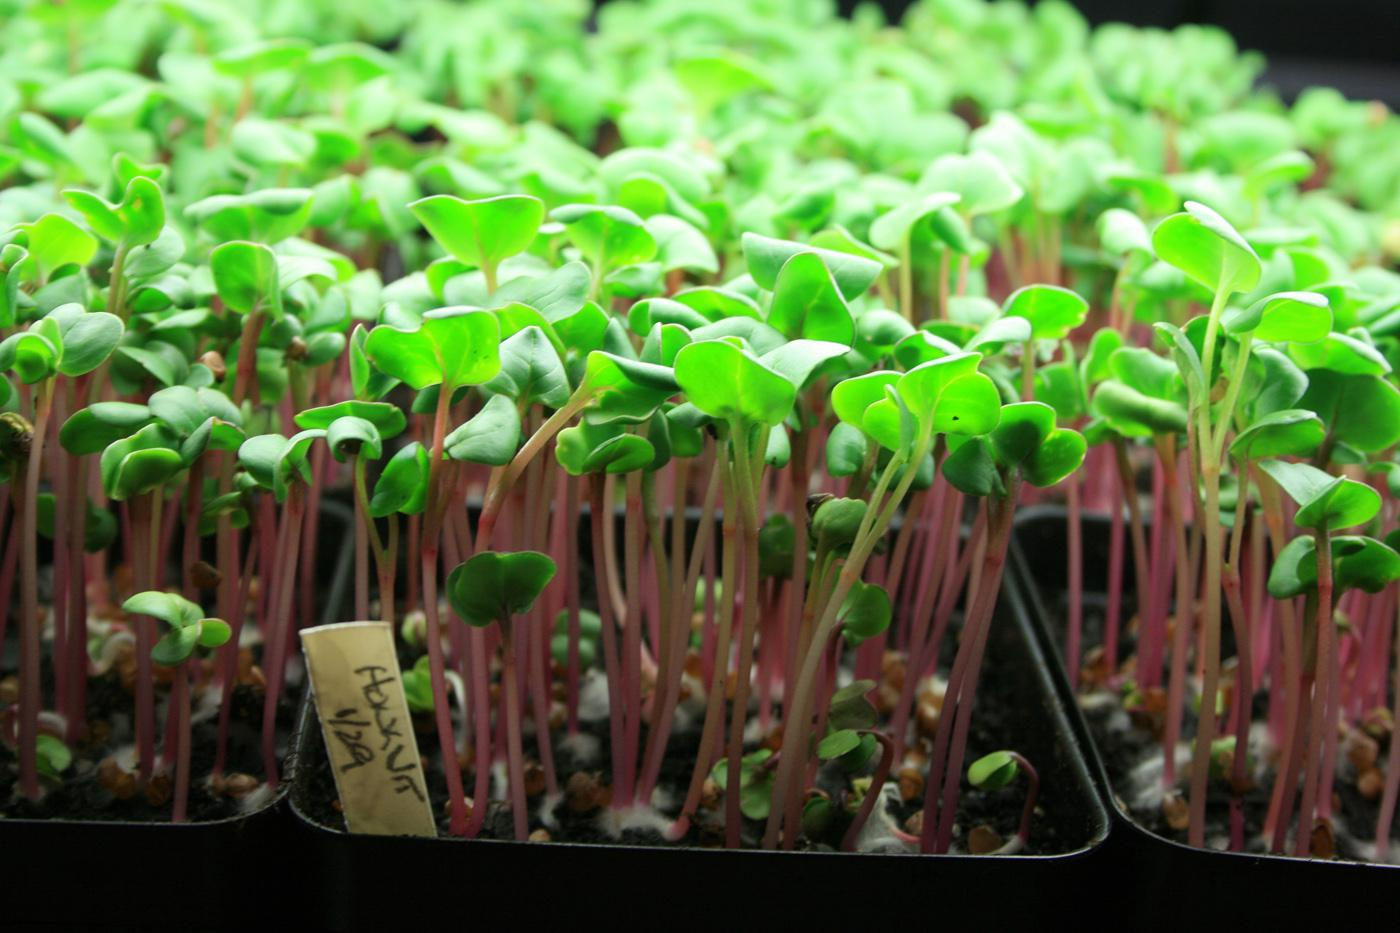 Grow microgreens, such as these Hong Vit radishes, to enjoy winter gardening and keep fresh greens on the table.